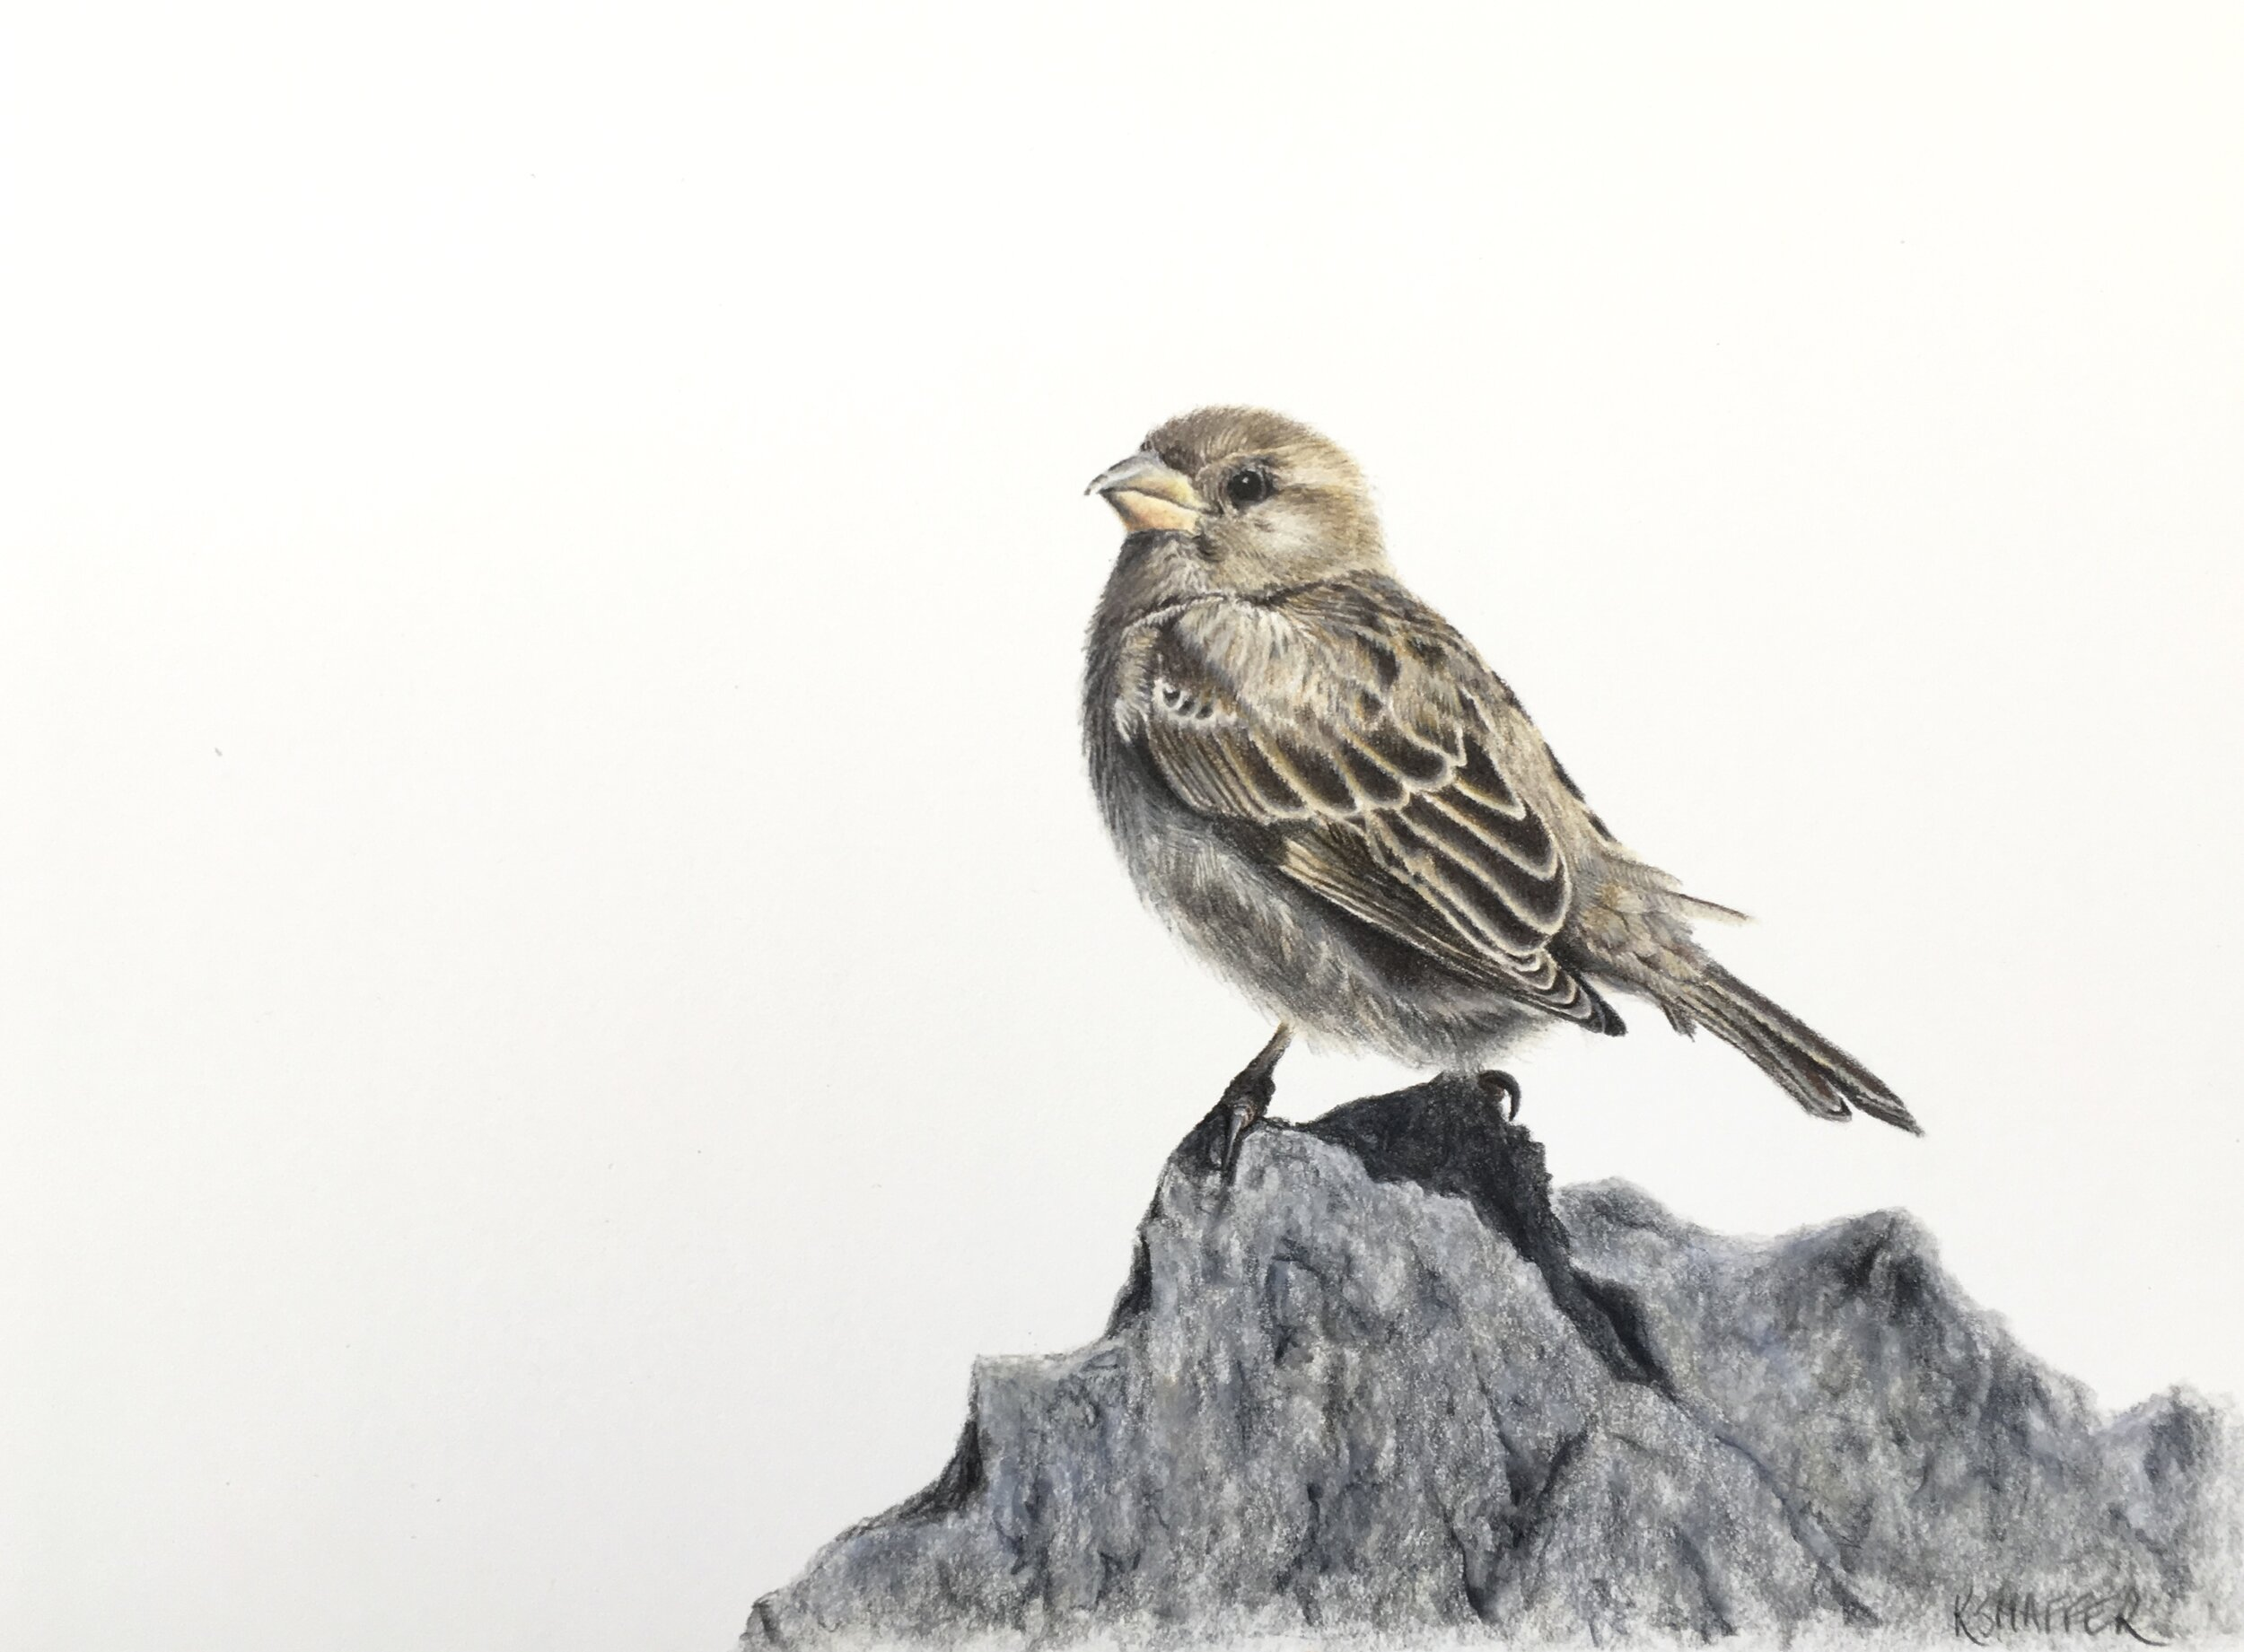 Sparrow, 7x9in, colored pencil on paper